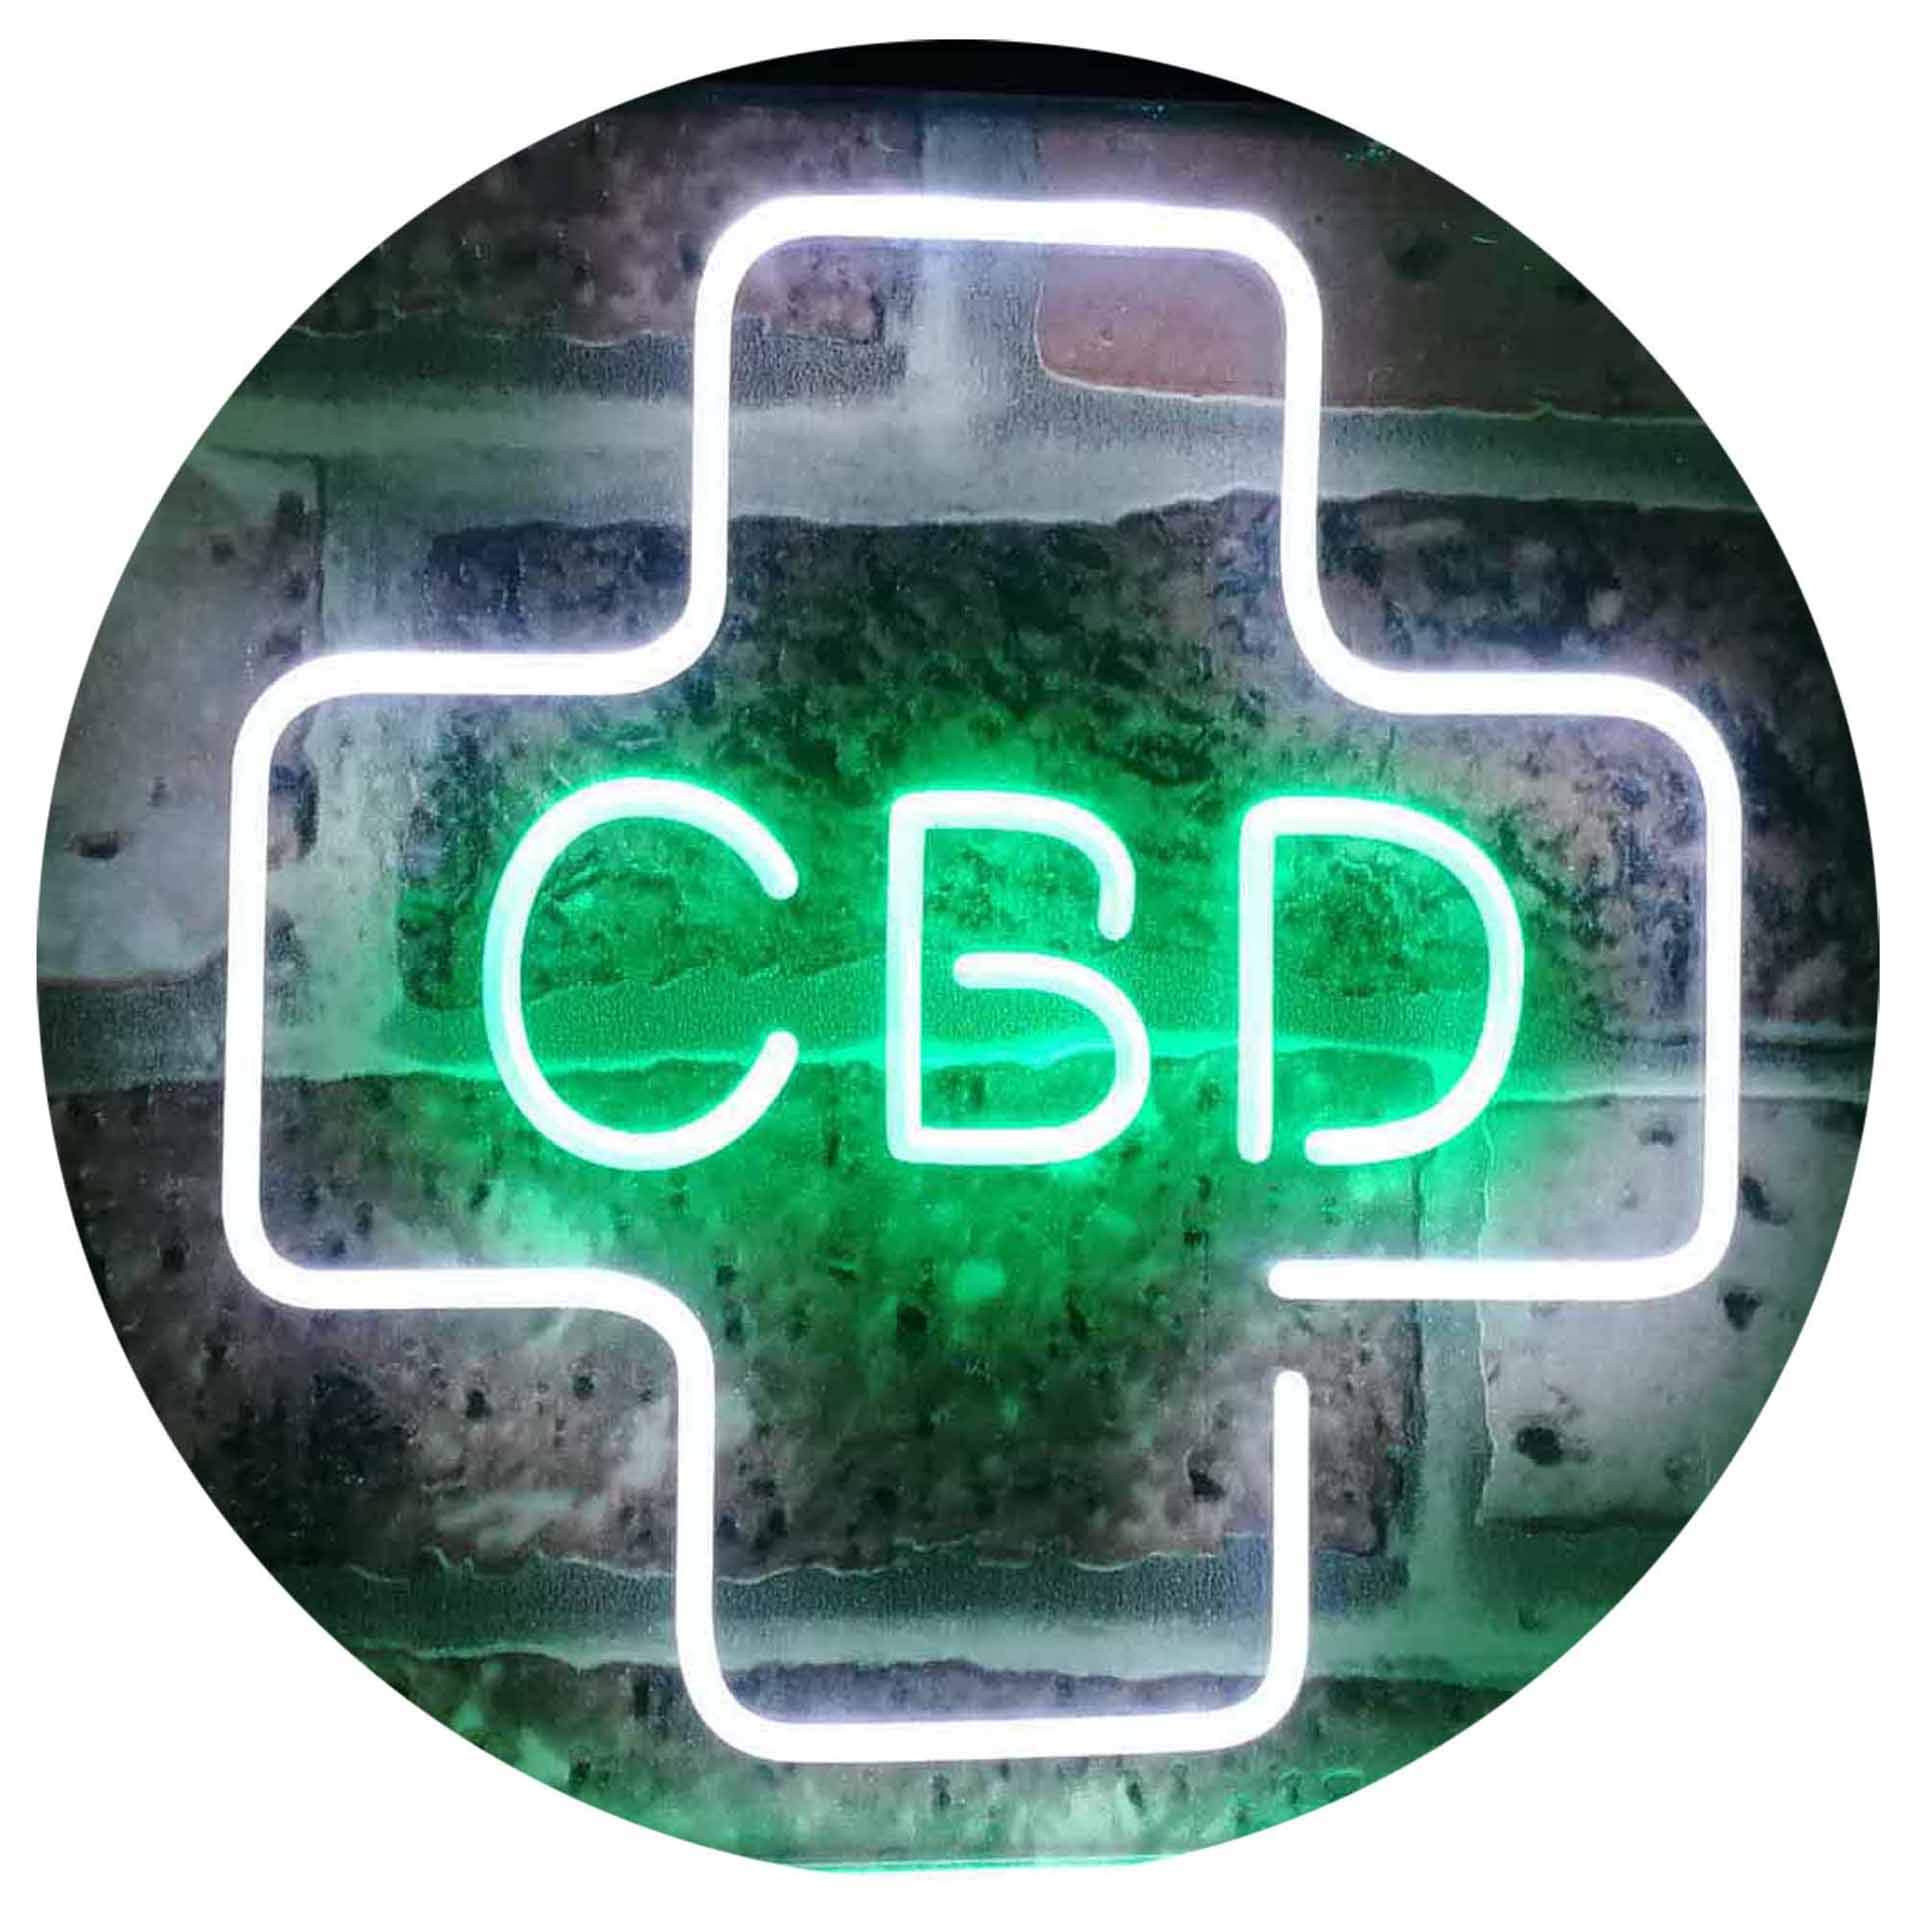 ADVPRO CBD Sold Here Medical Cross Indoor Dual Color LED Neon Sign White & Green 16'' x 12'' st6s43-i3083-wg